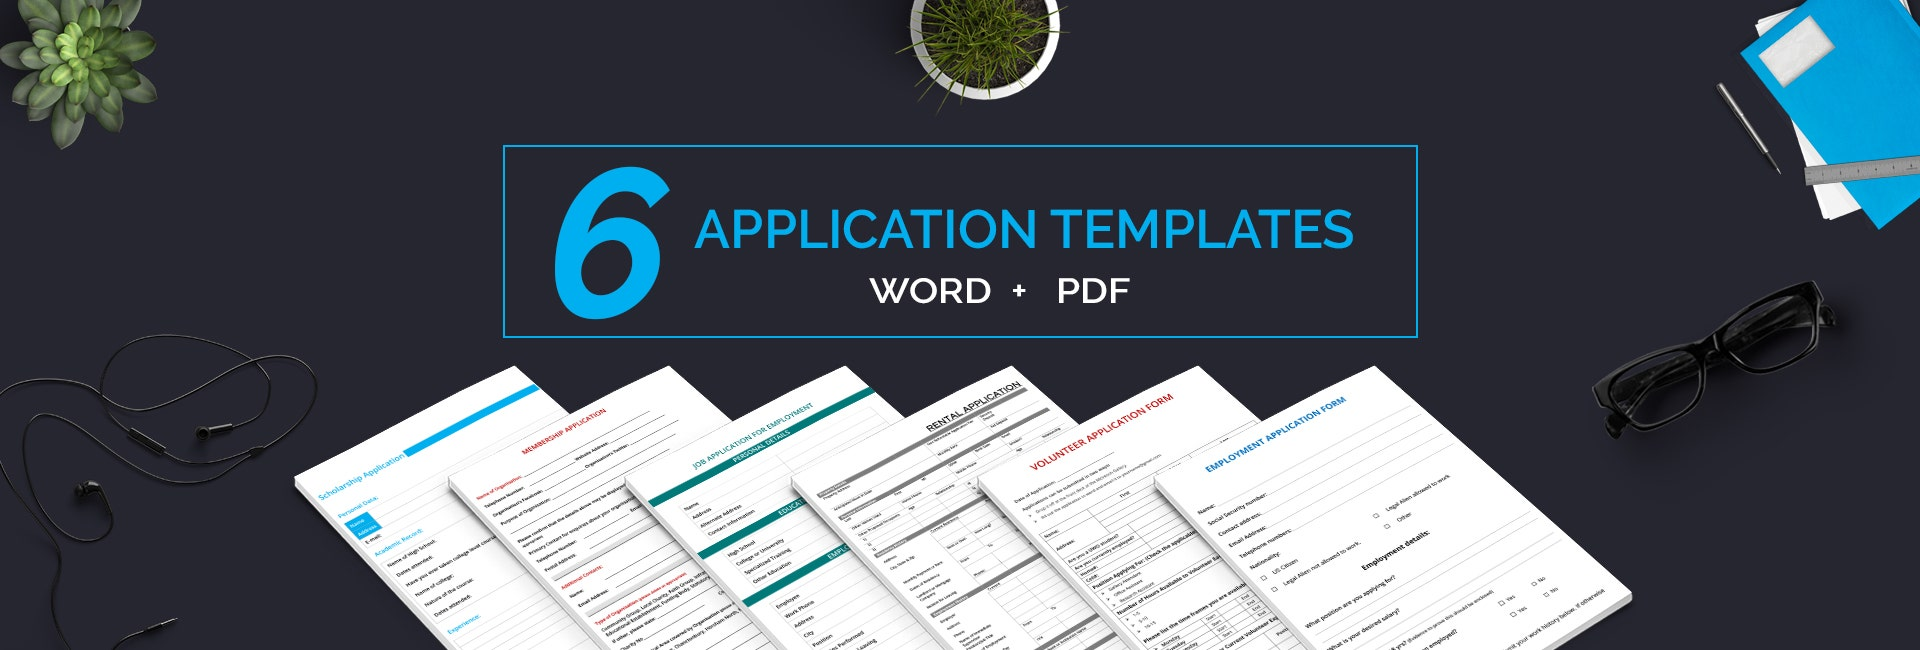 applicationttemplates